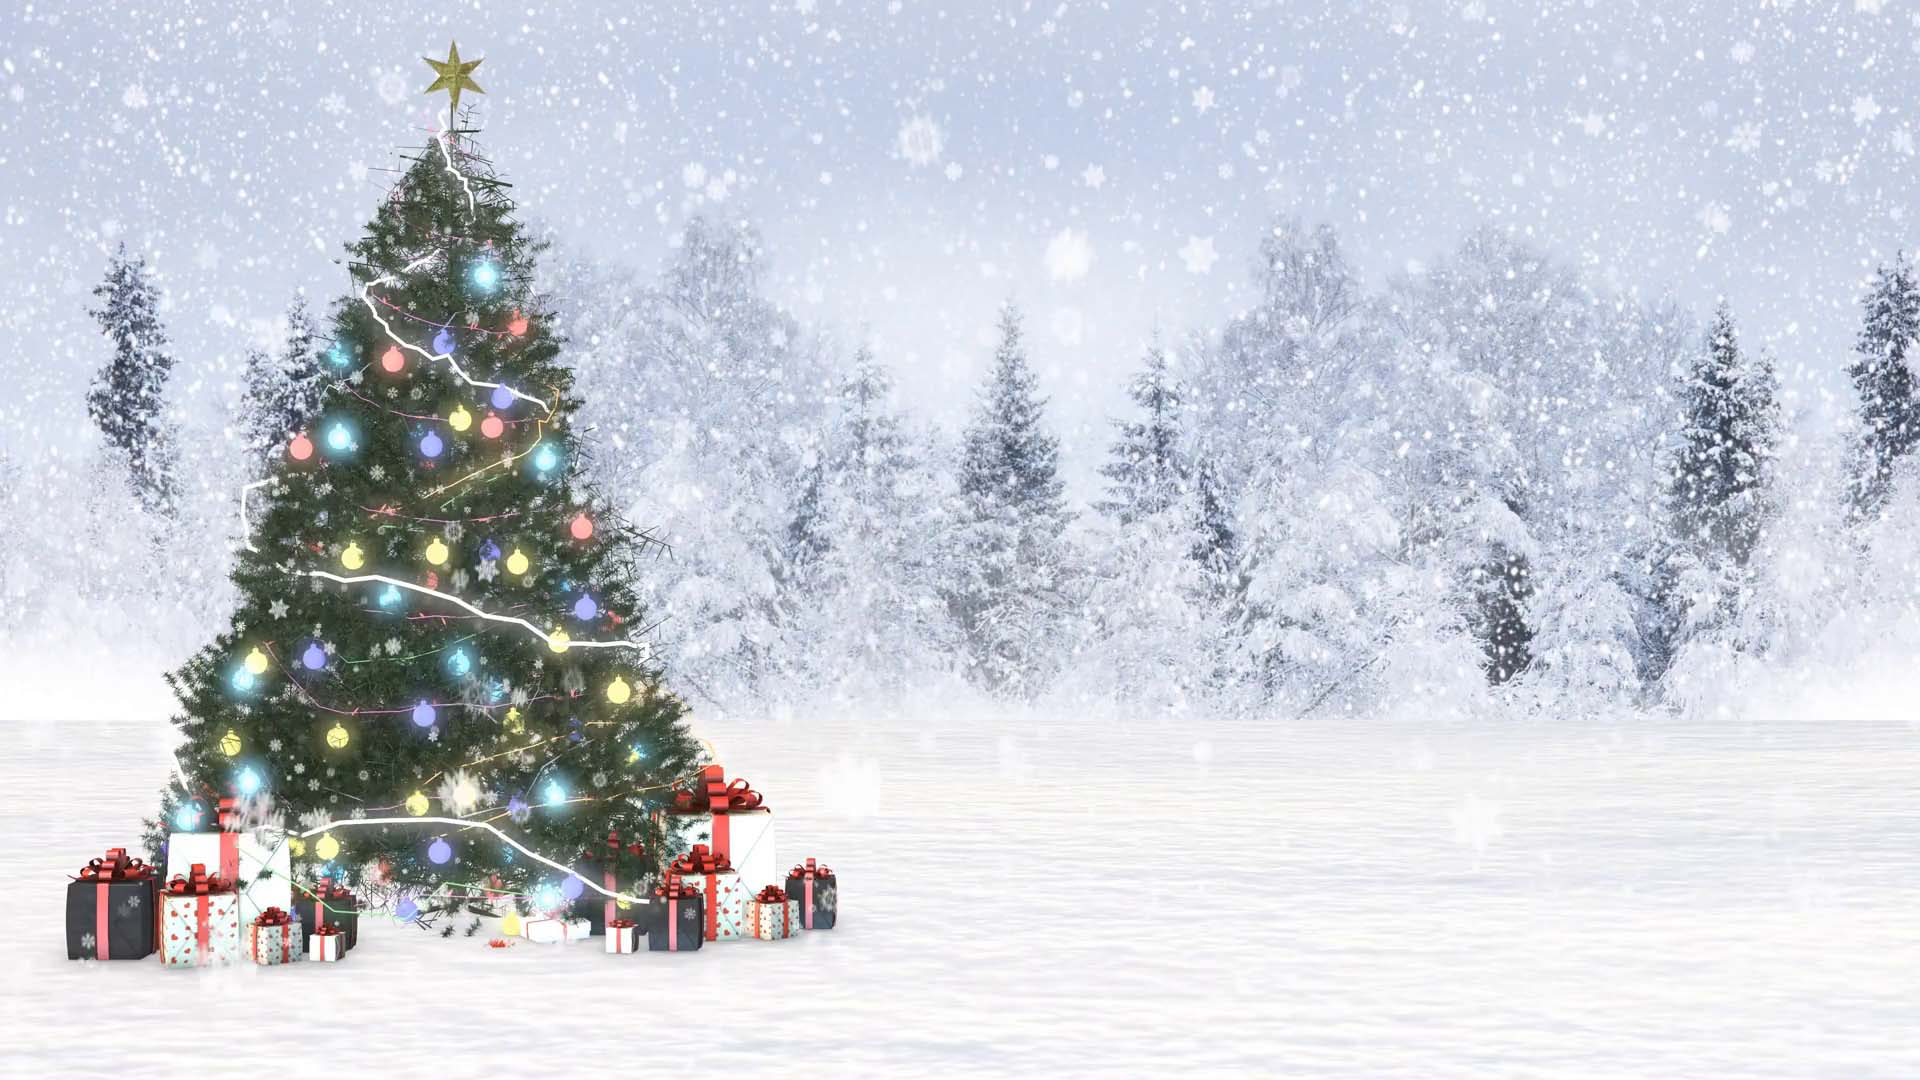 Merry christmas wallpaper hd